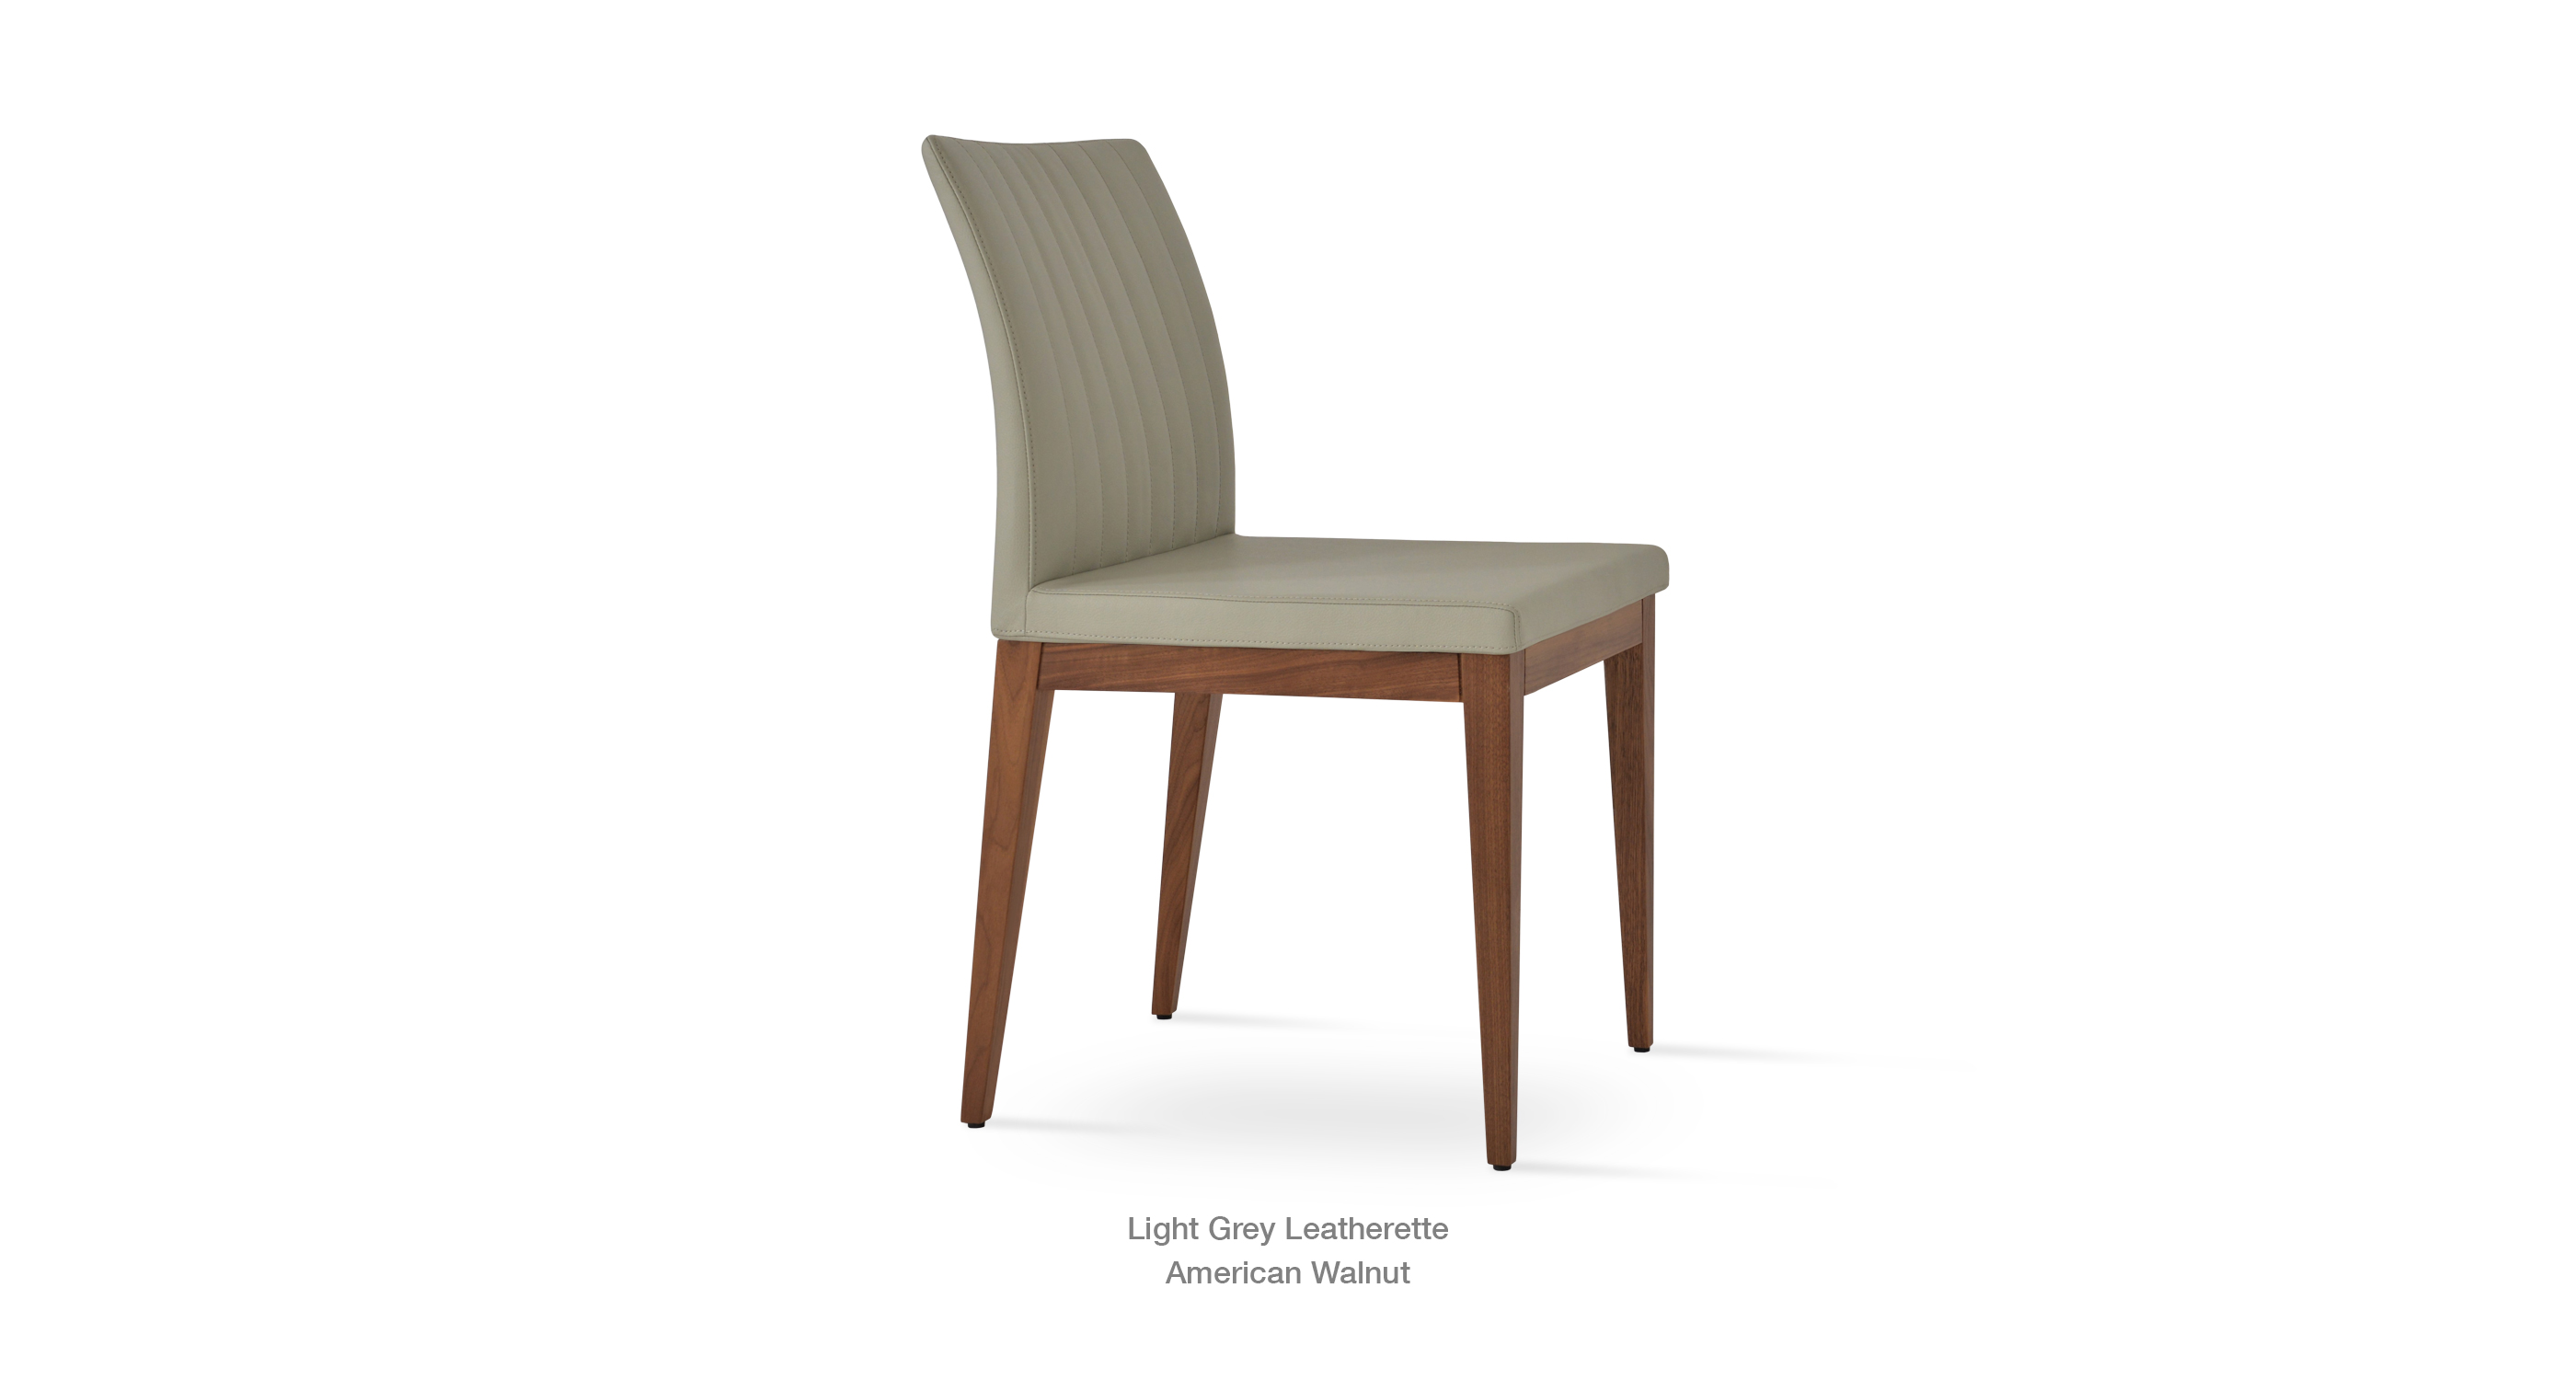 Bottega Wood Light Grey Leatherette